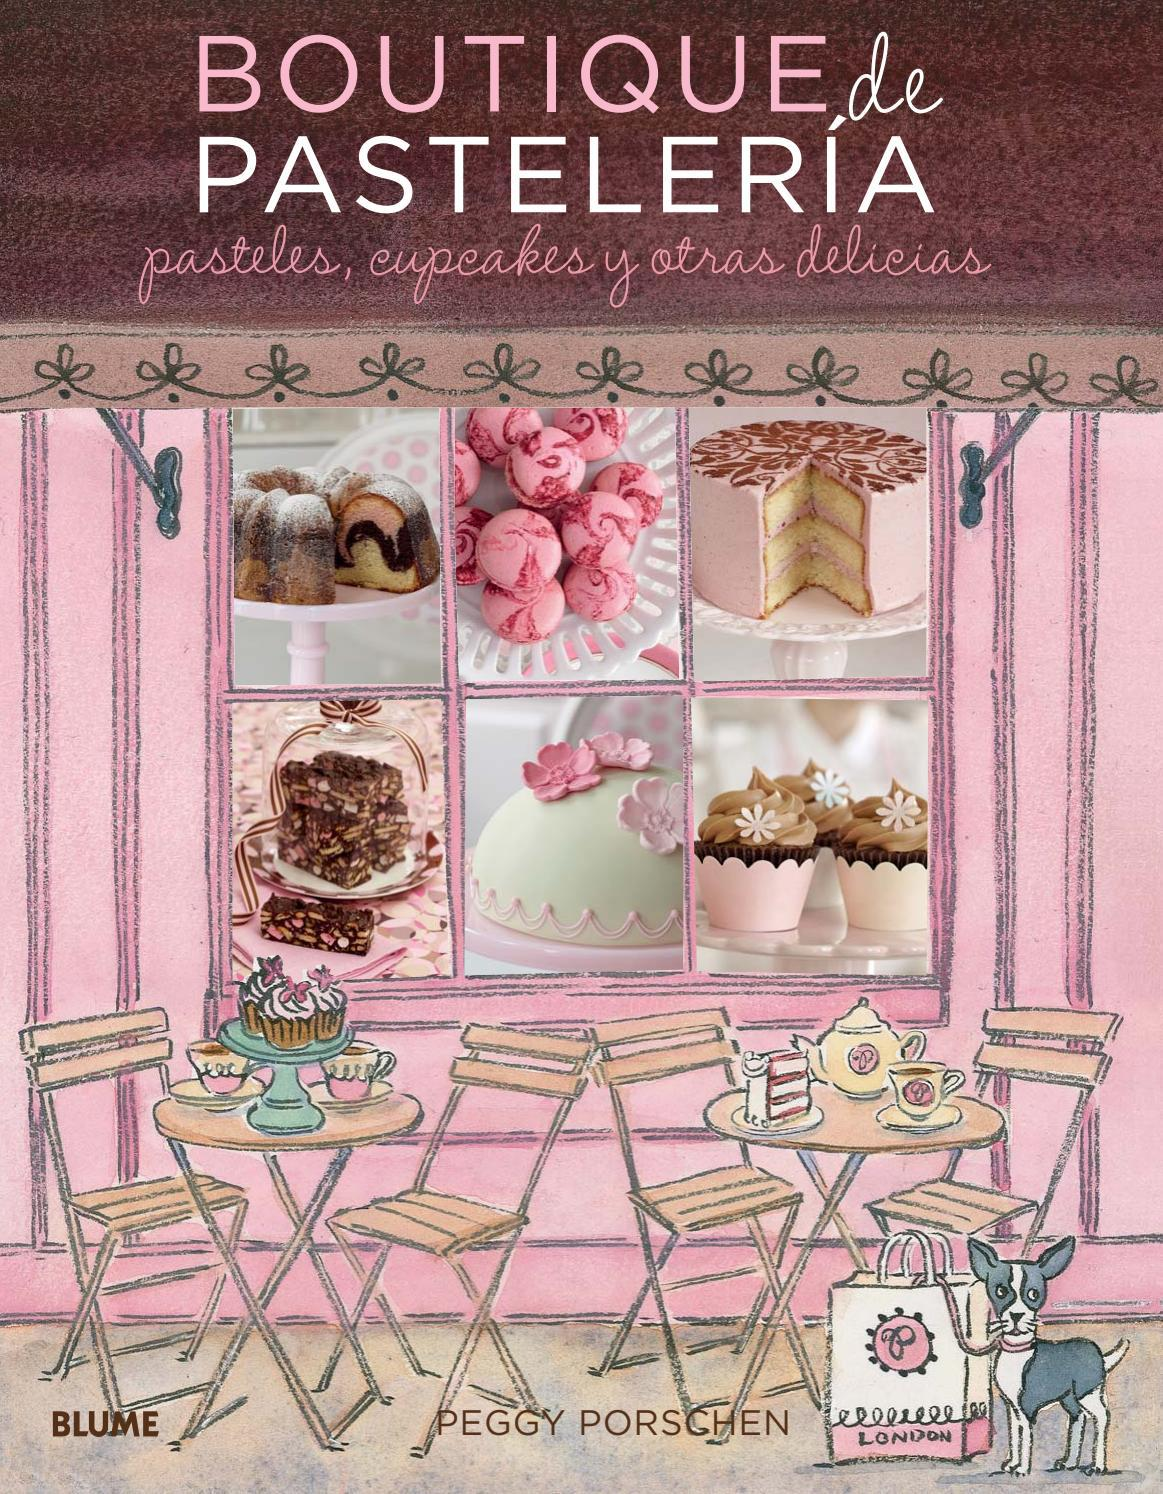 Libro De Reposteria Boutique De Pasteleria By Editorial Blume Issuu